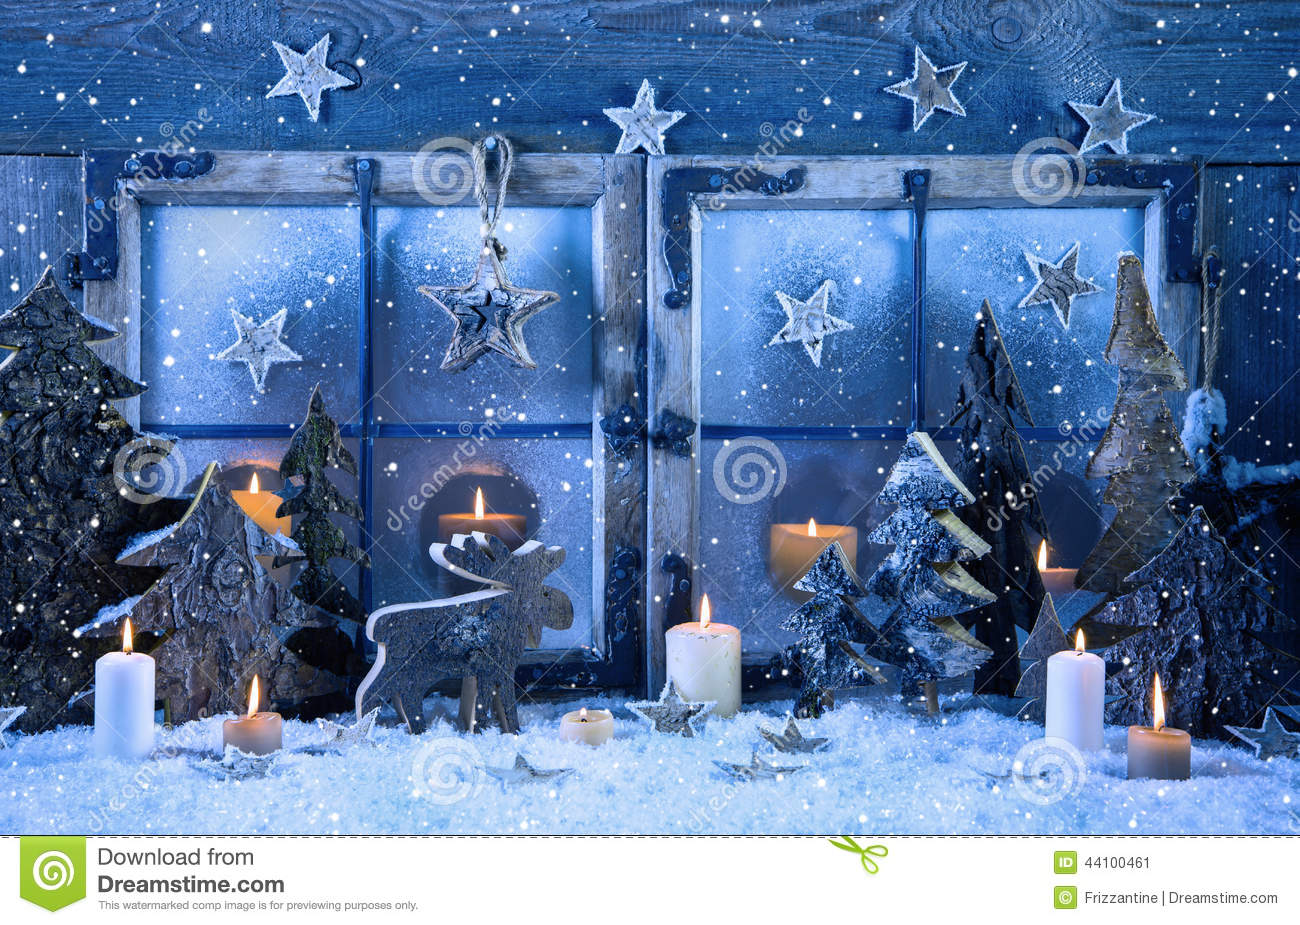 Outdoor christmas window decorations - Outdoor Christmas Window Decoration In Blue With Wood And Candle Stock Photo